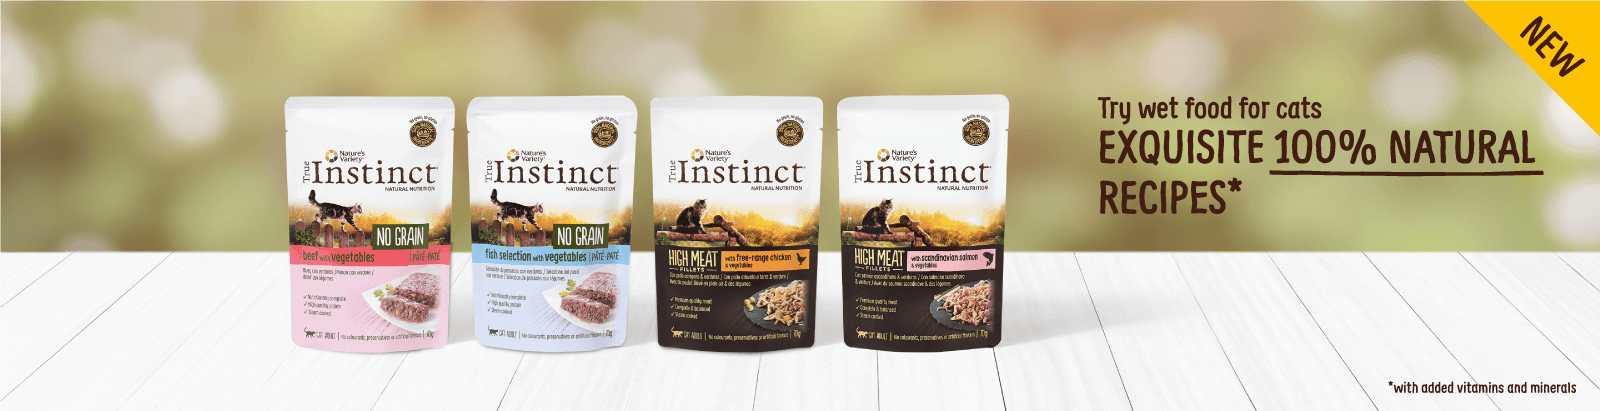 Try wet food for cats EXQUISITE 100% NATURAL RECIPES *with added vitamins and minerals NEW